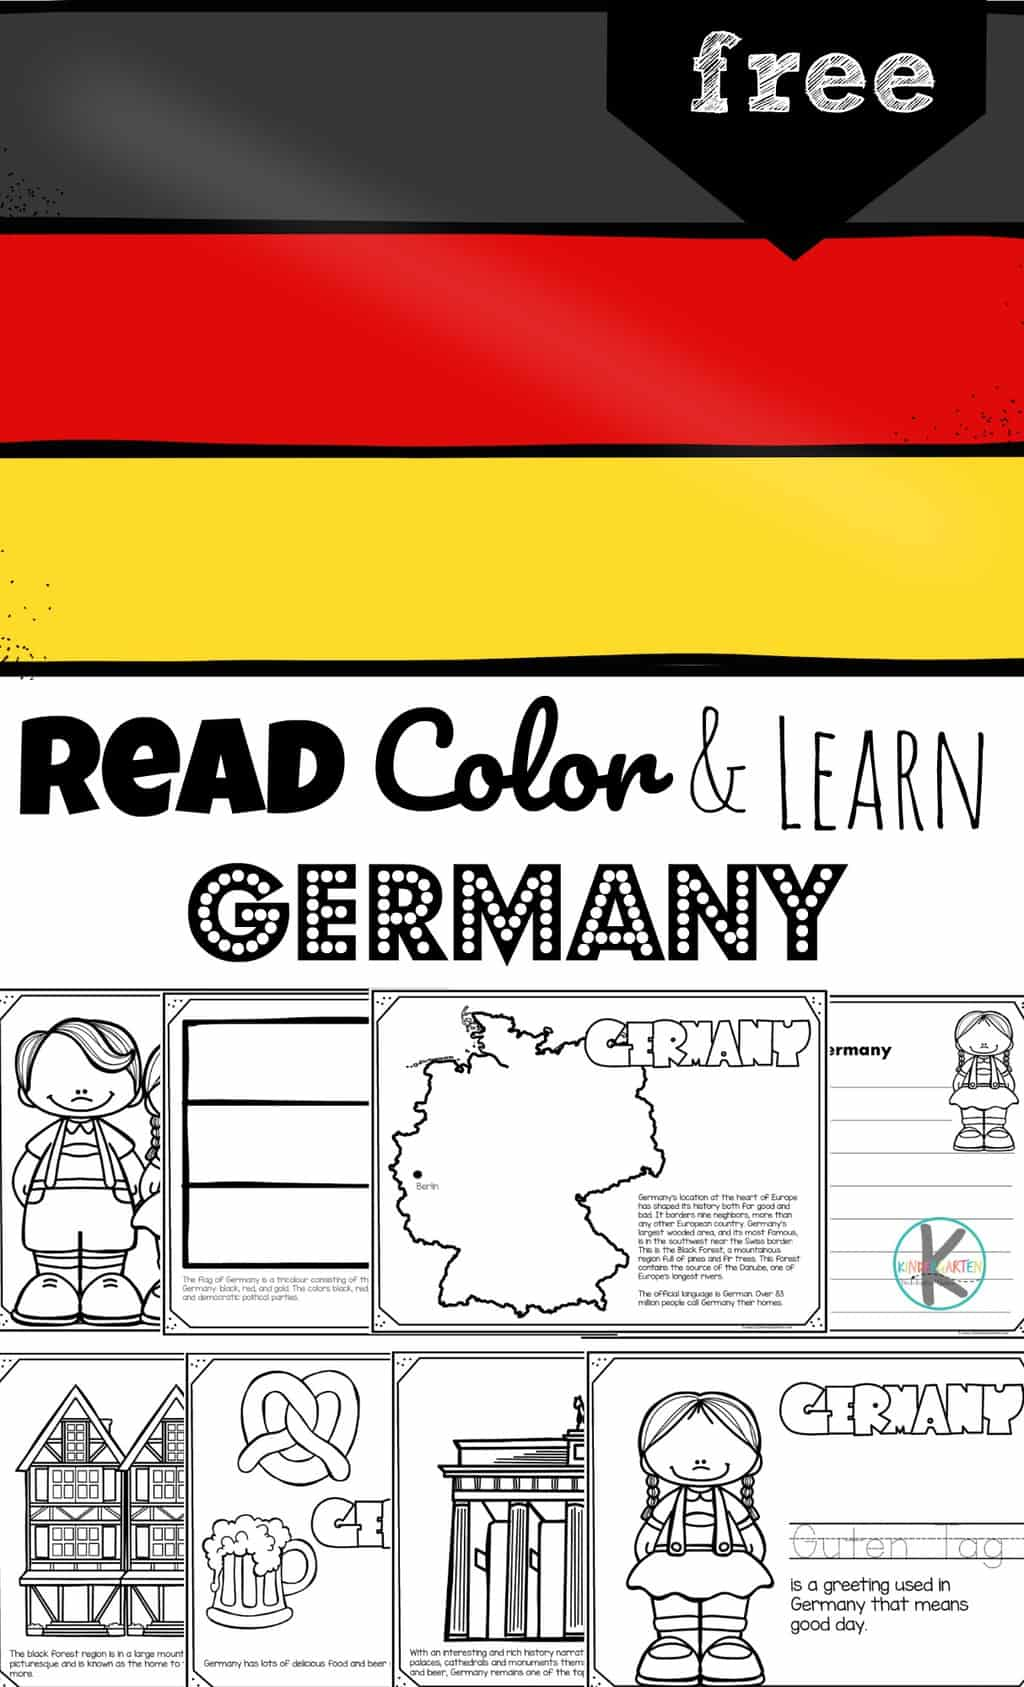 German Flag Coloring Page : german, coloring, Color, Learn, About, GERMANY